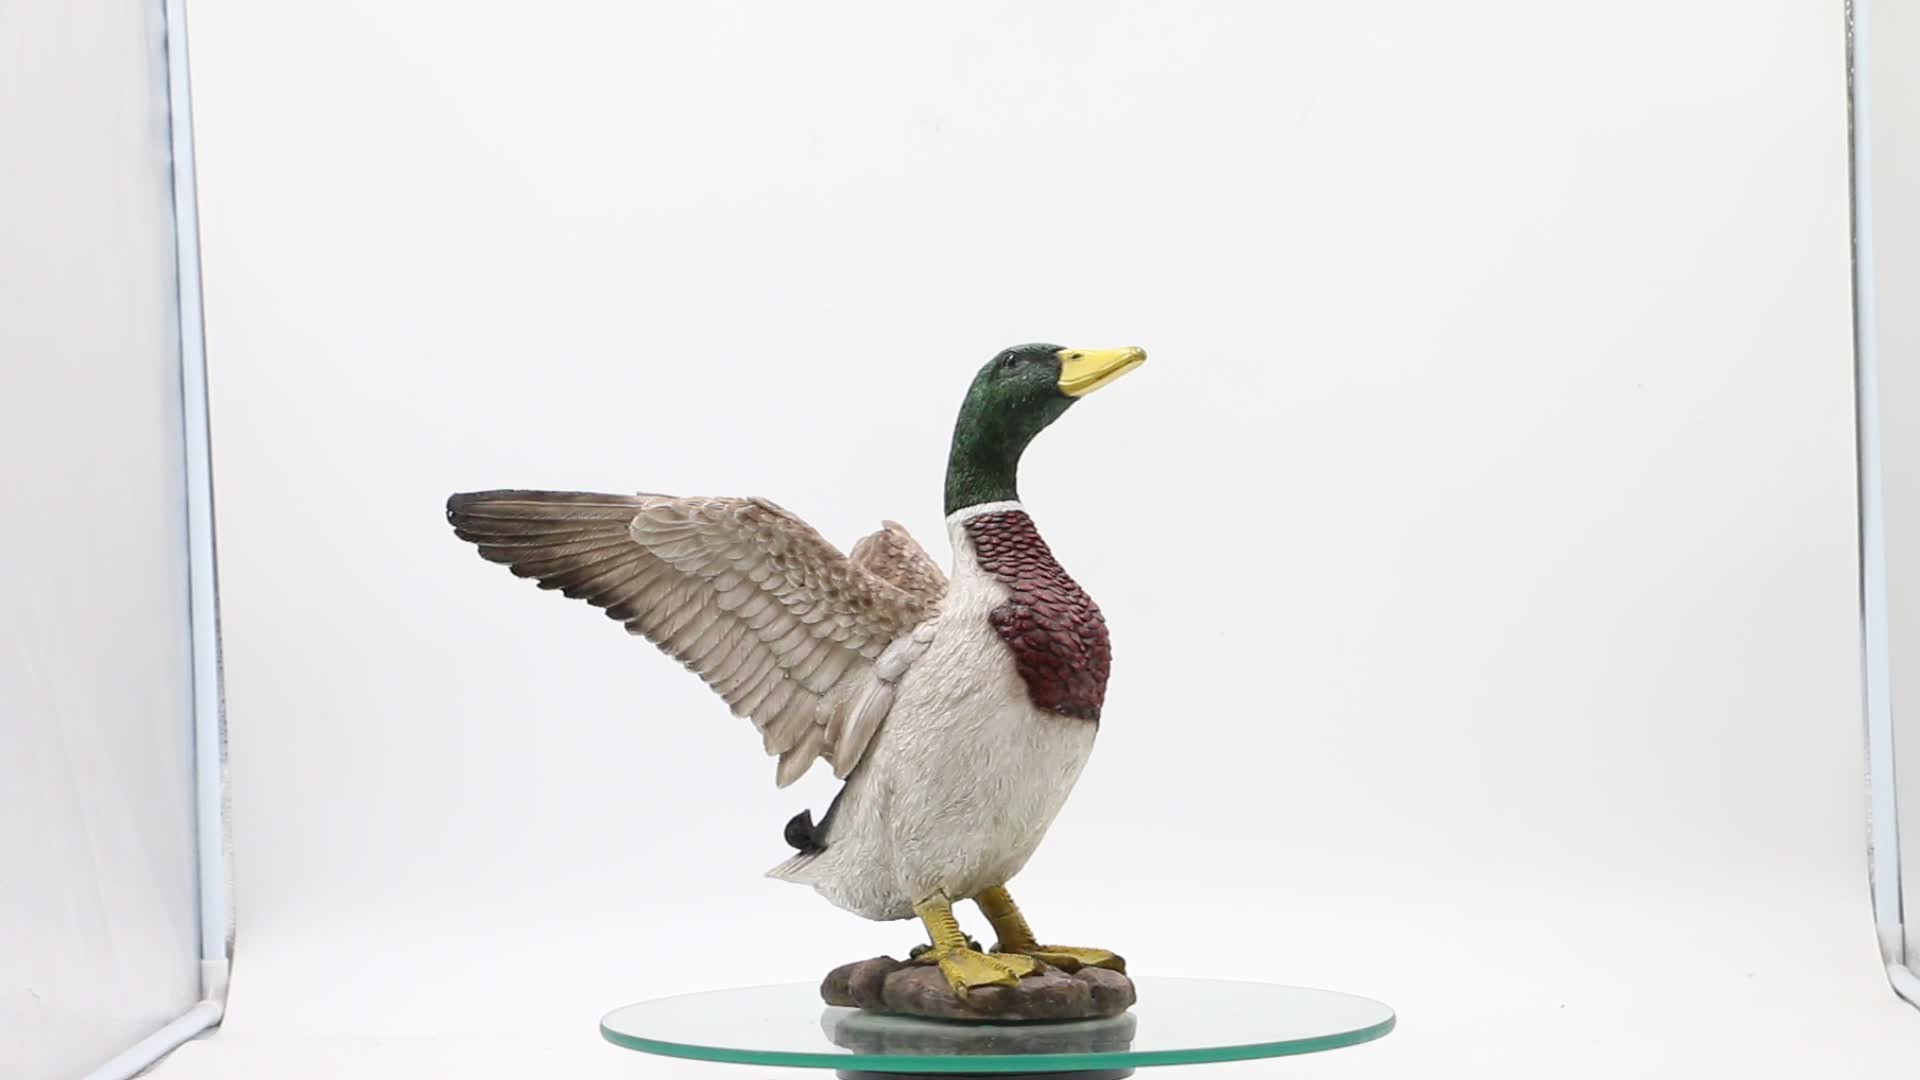 Life like garden decoration fiberglass mallard statue extending wings resin duck figurines